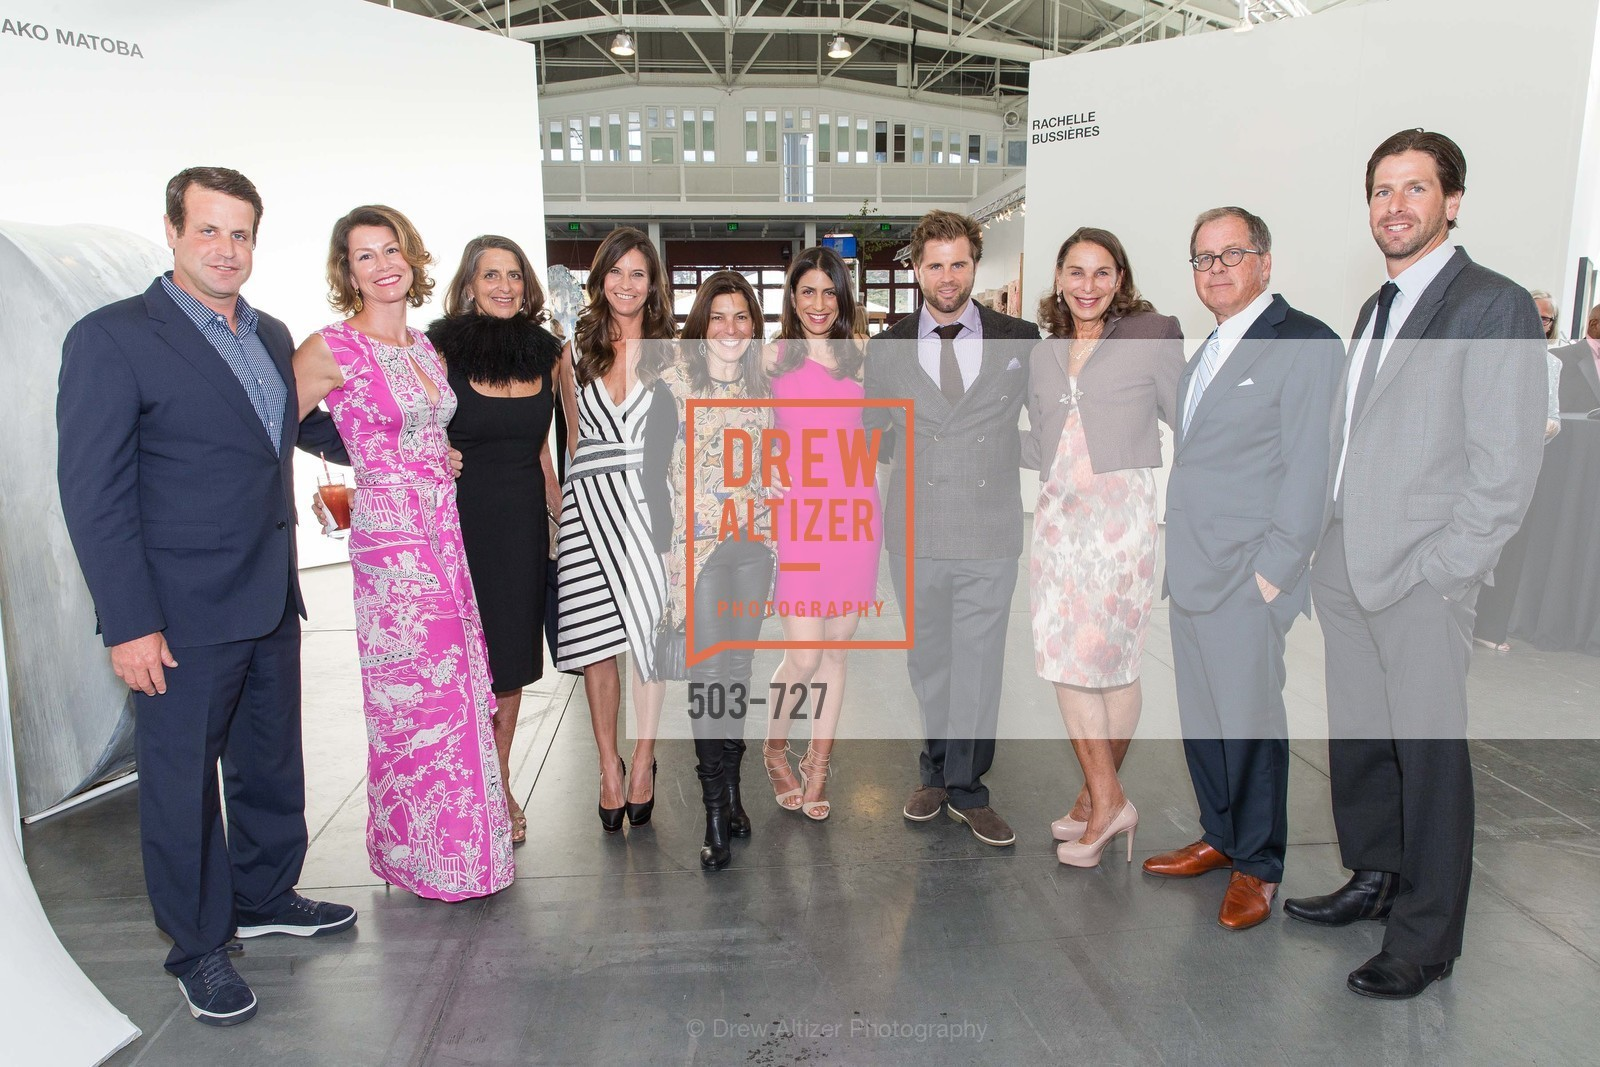 Nick Heldfond, Simone LaCorte, Sari Swig, Susan Swig, Liza Cannata, Joey Cannata, SAN FRANCISCO ART INSTITUTE Gala Honoring Art Visionary and Advocate ROSELYNE CHROMAN SWIG, US, May 14th, 2015,Drew Altizer, Drew Altizer Photography, full-service agency, private events, San Francisco photographer, photographer california